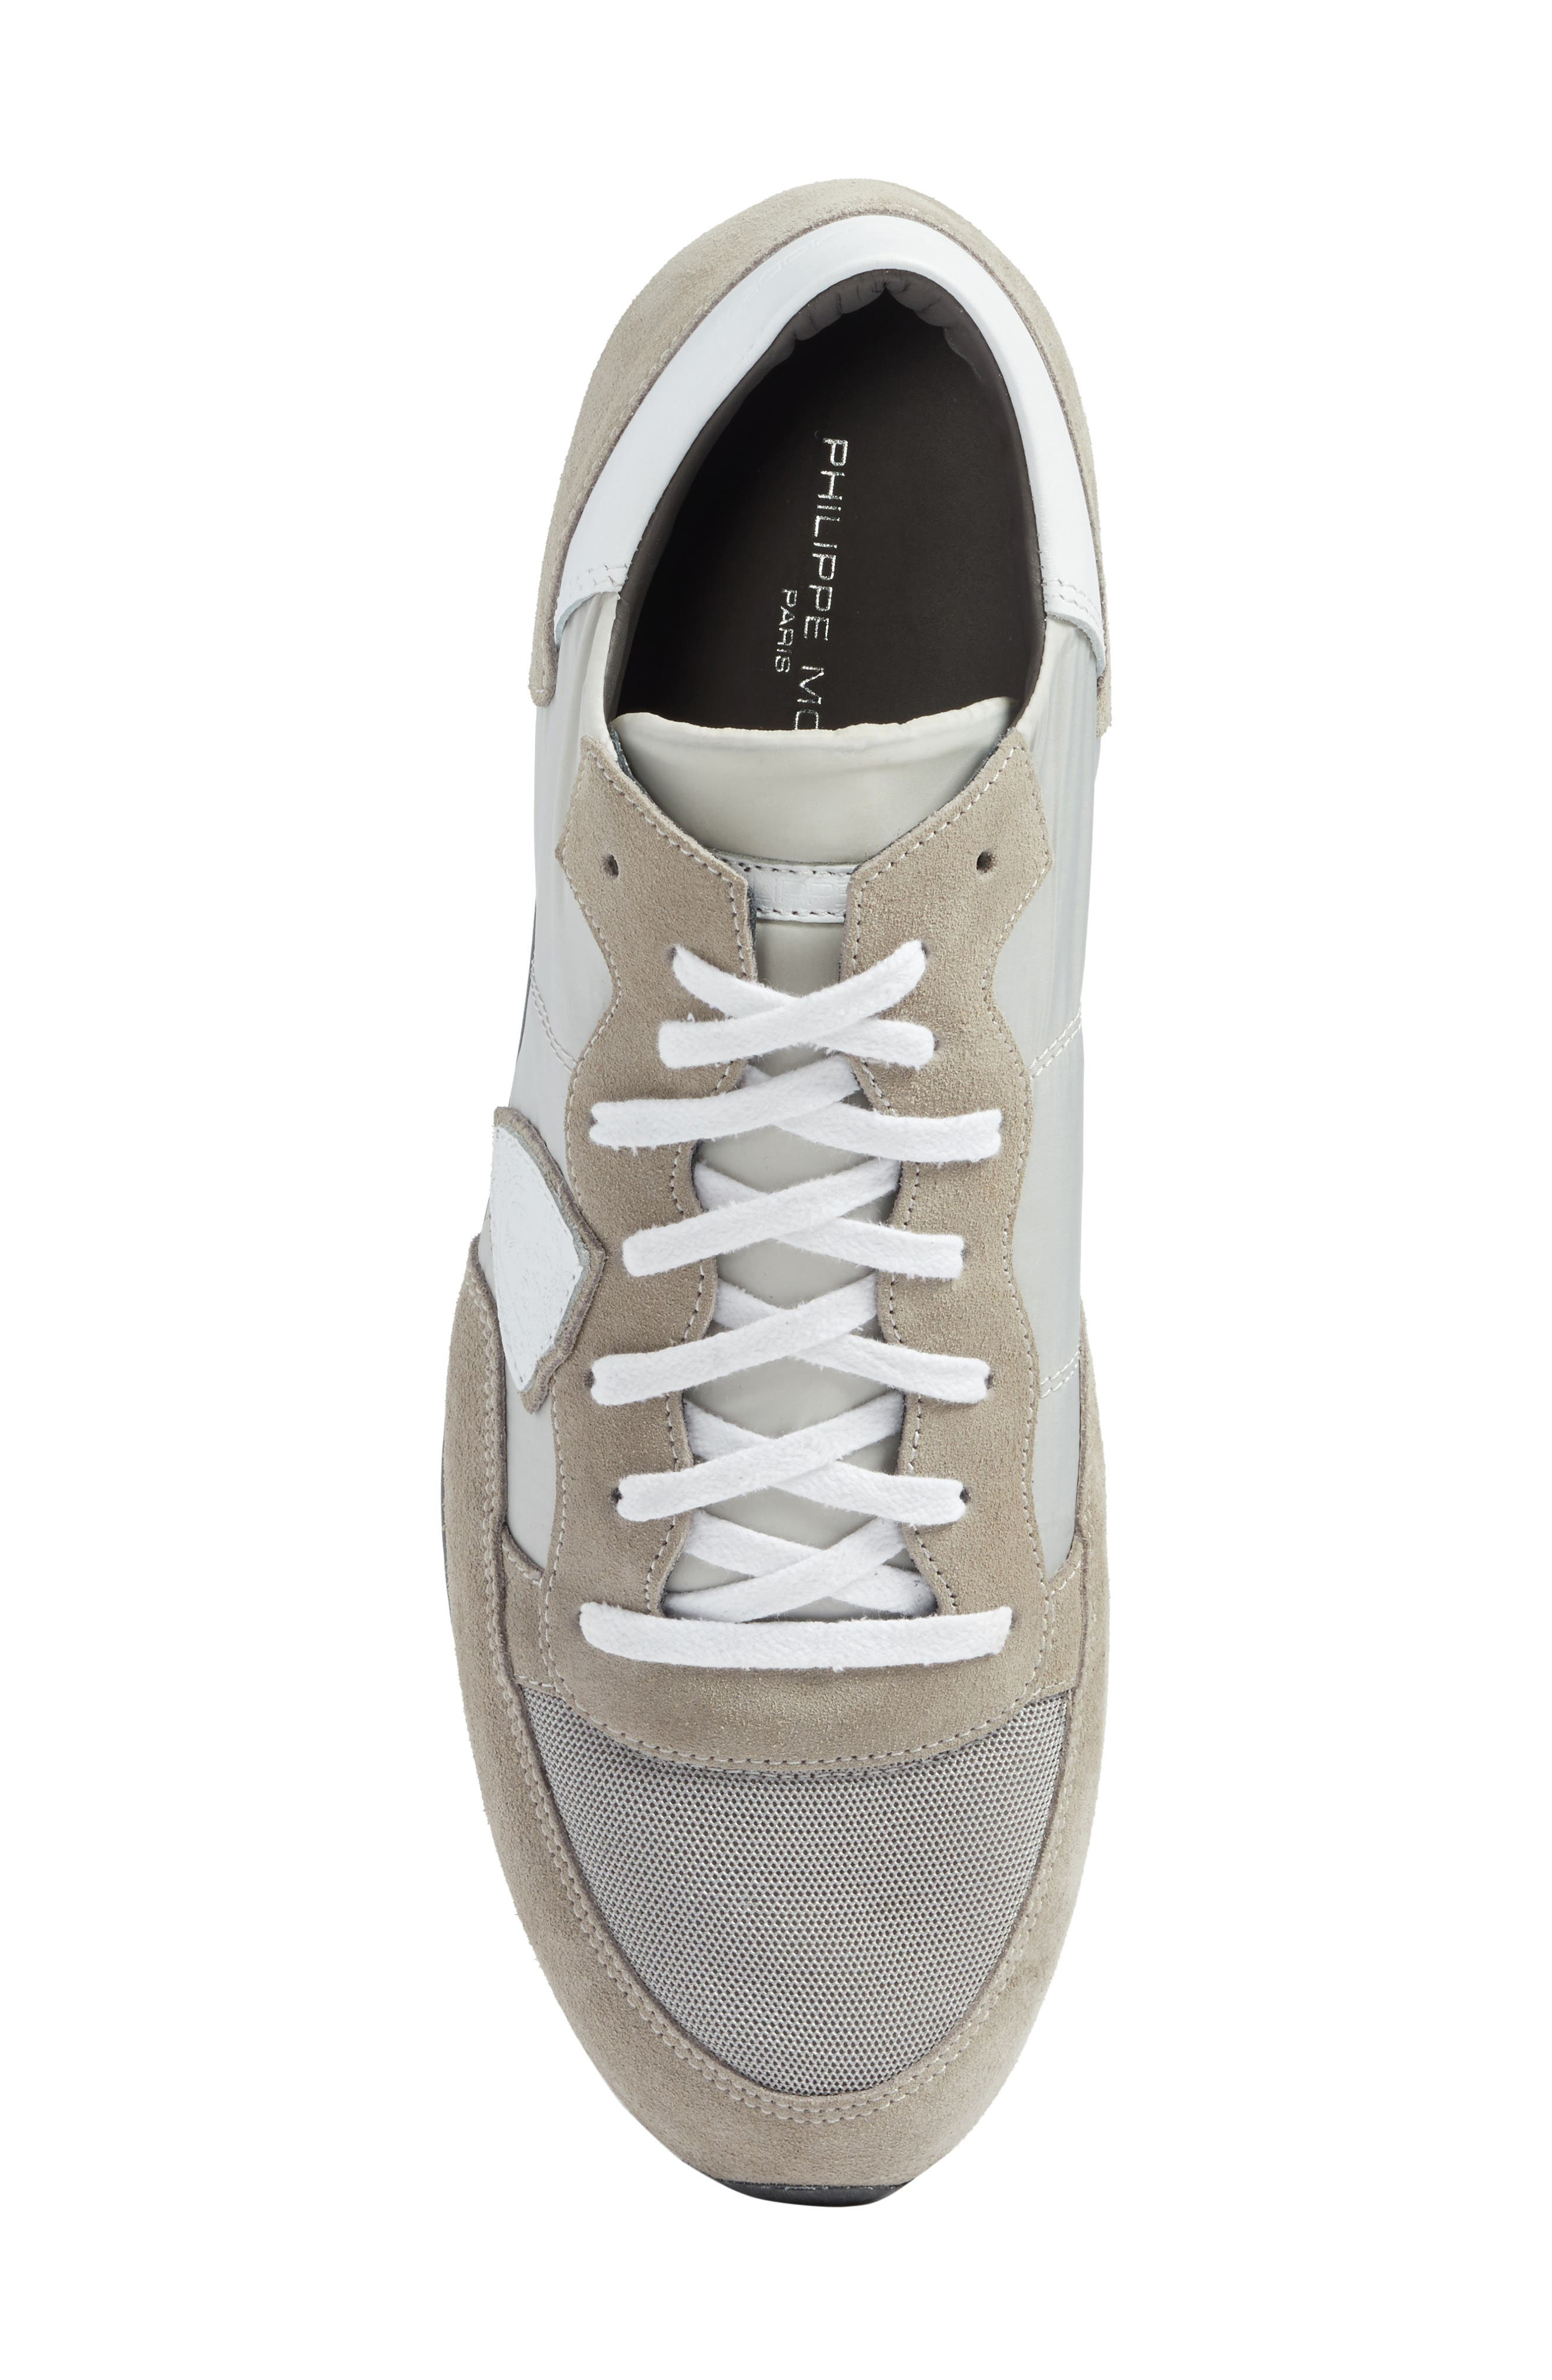 Tropez Low Top Sneaker,                             Alternate thumbnail 5, color,                             Grey/ White